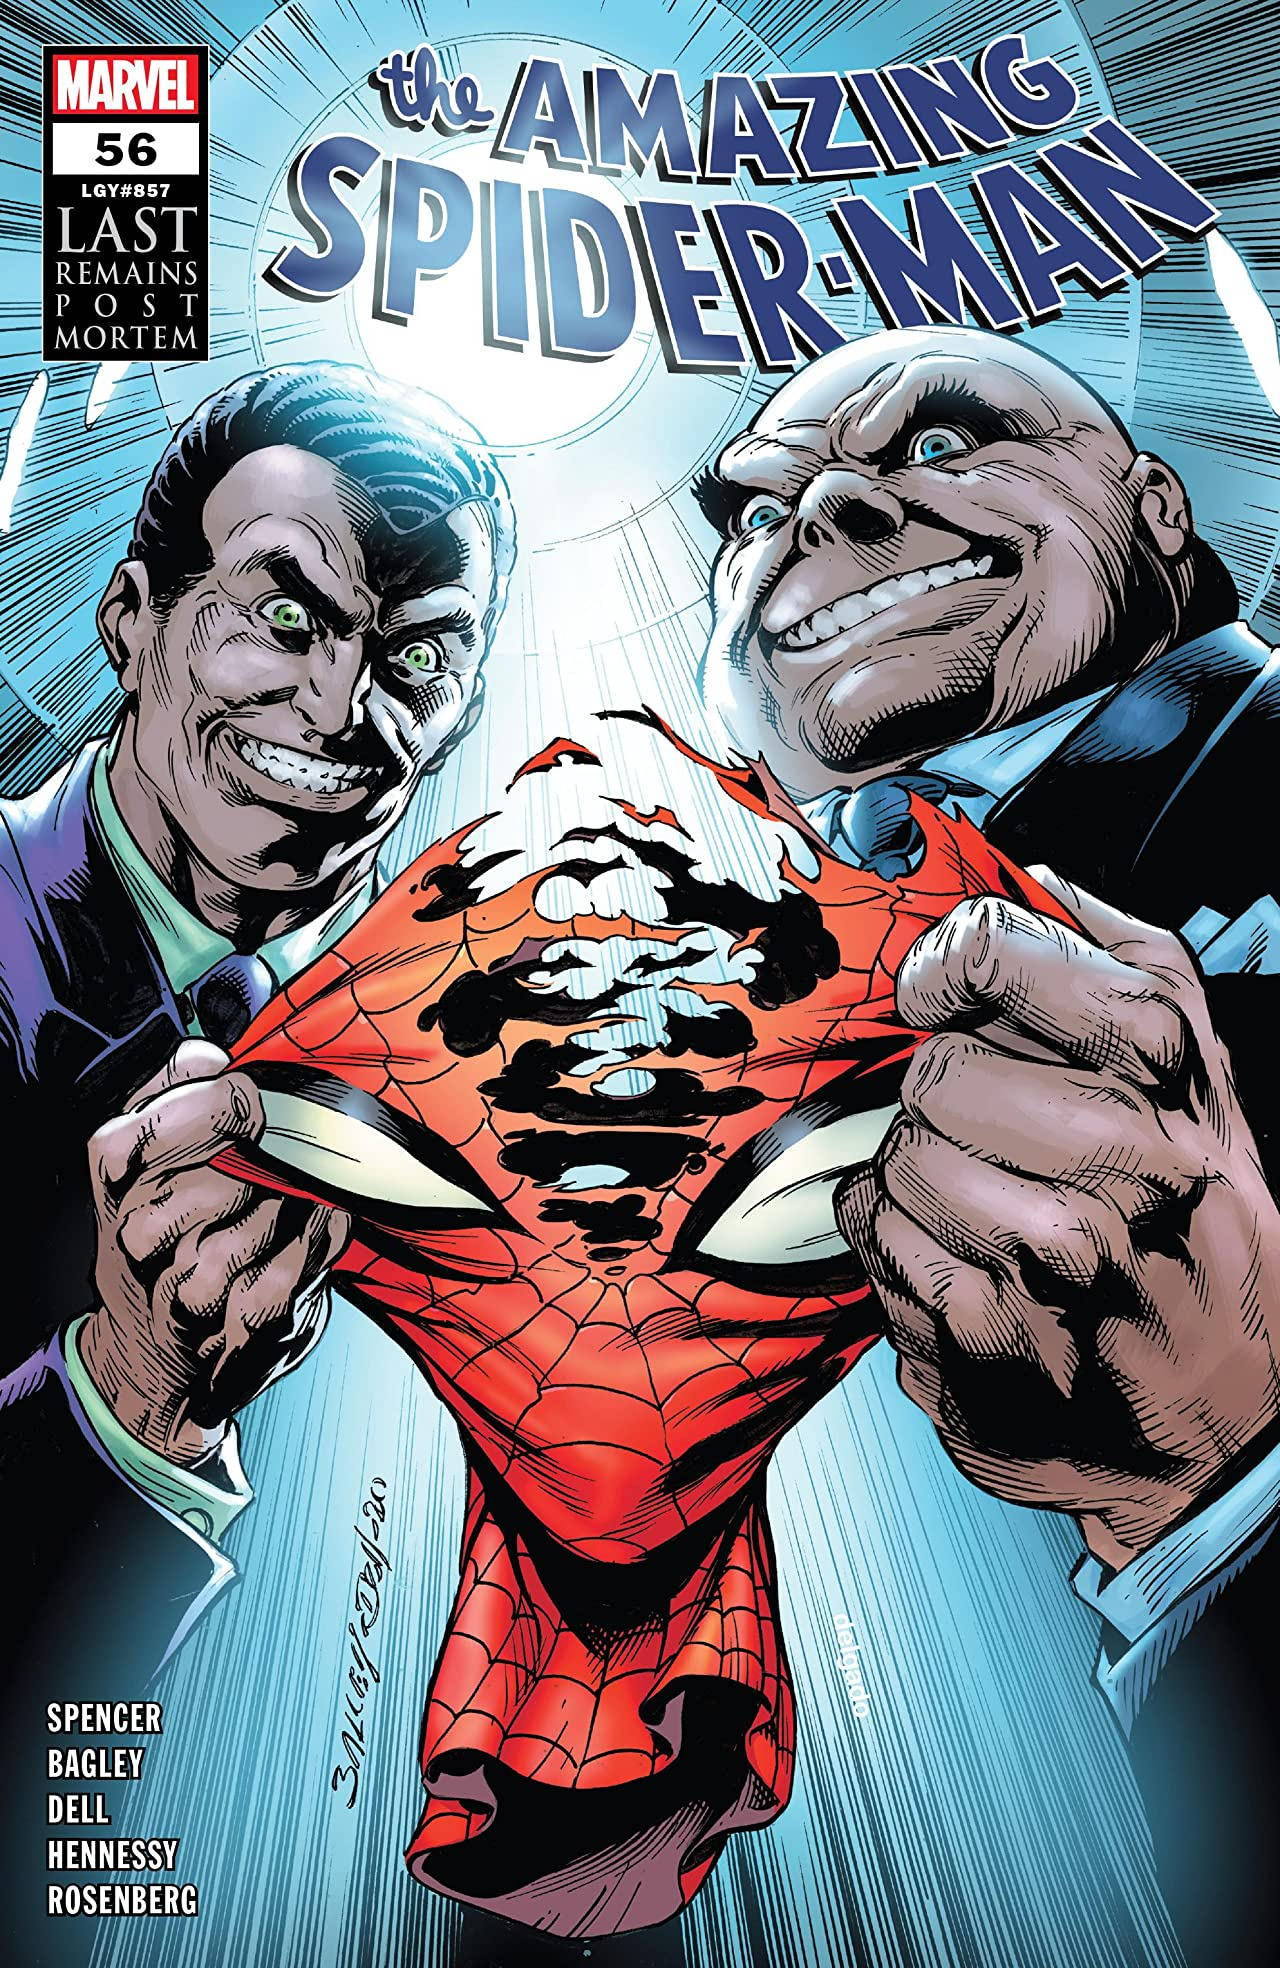 REVIEW: Amazing Spider-Man #56